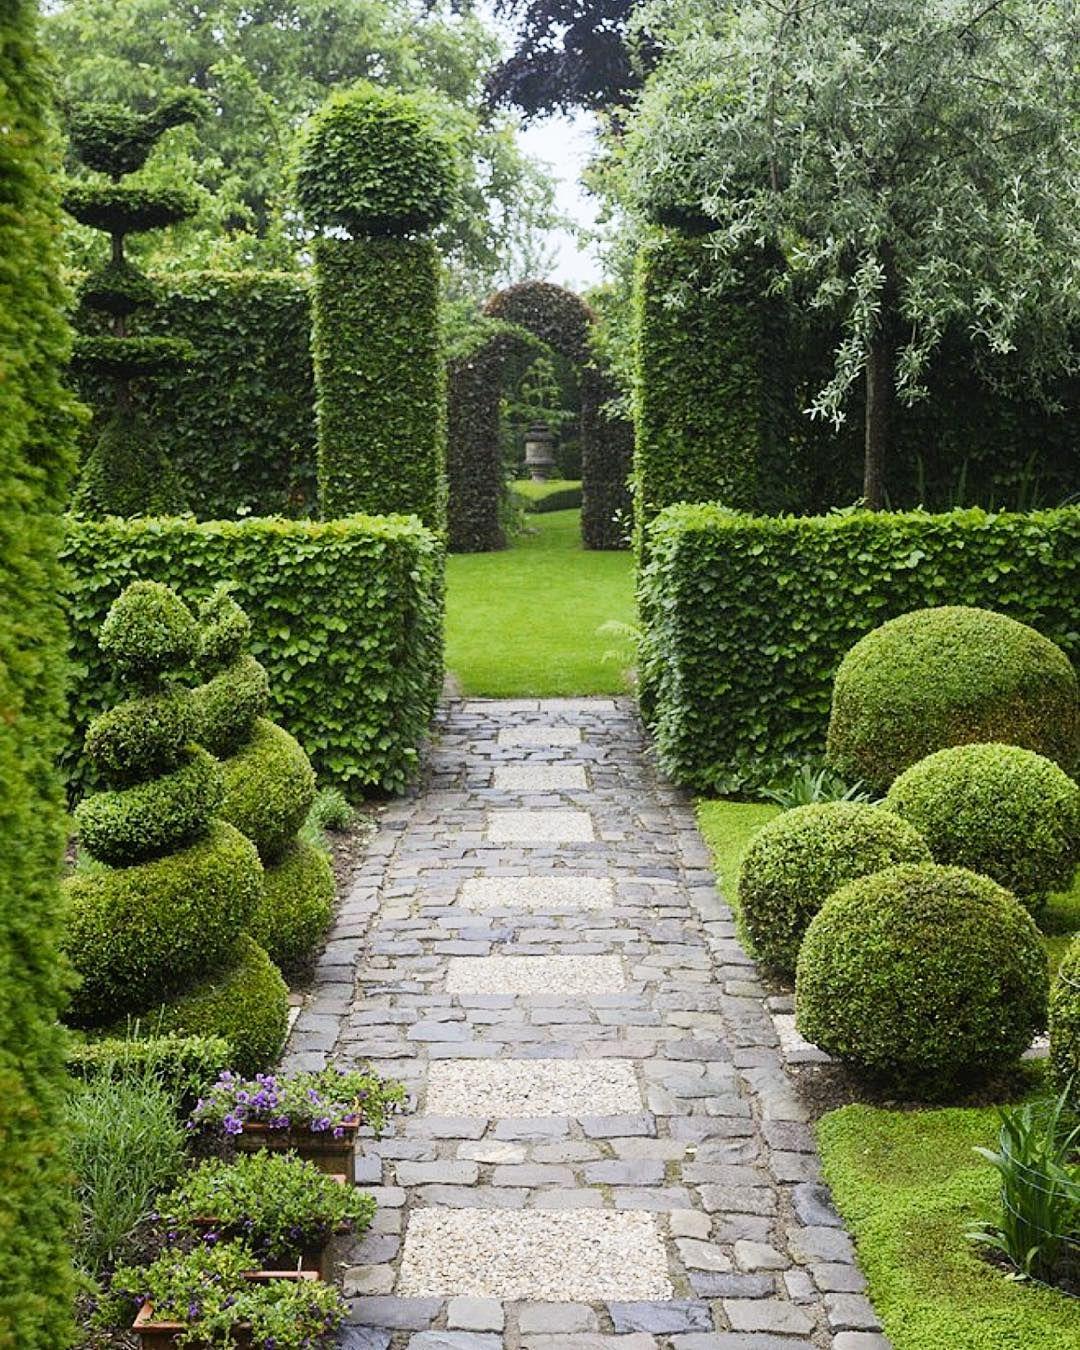 1 487 Likes 55 Comments Jenny Rose Innes Jennyroseinnes On Instagram How Stunning Cannot Country Garden Design Country Gardening Beautiful Gardens